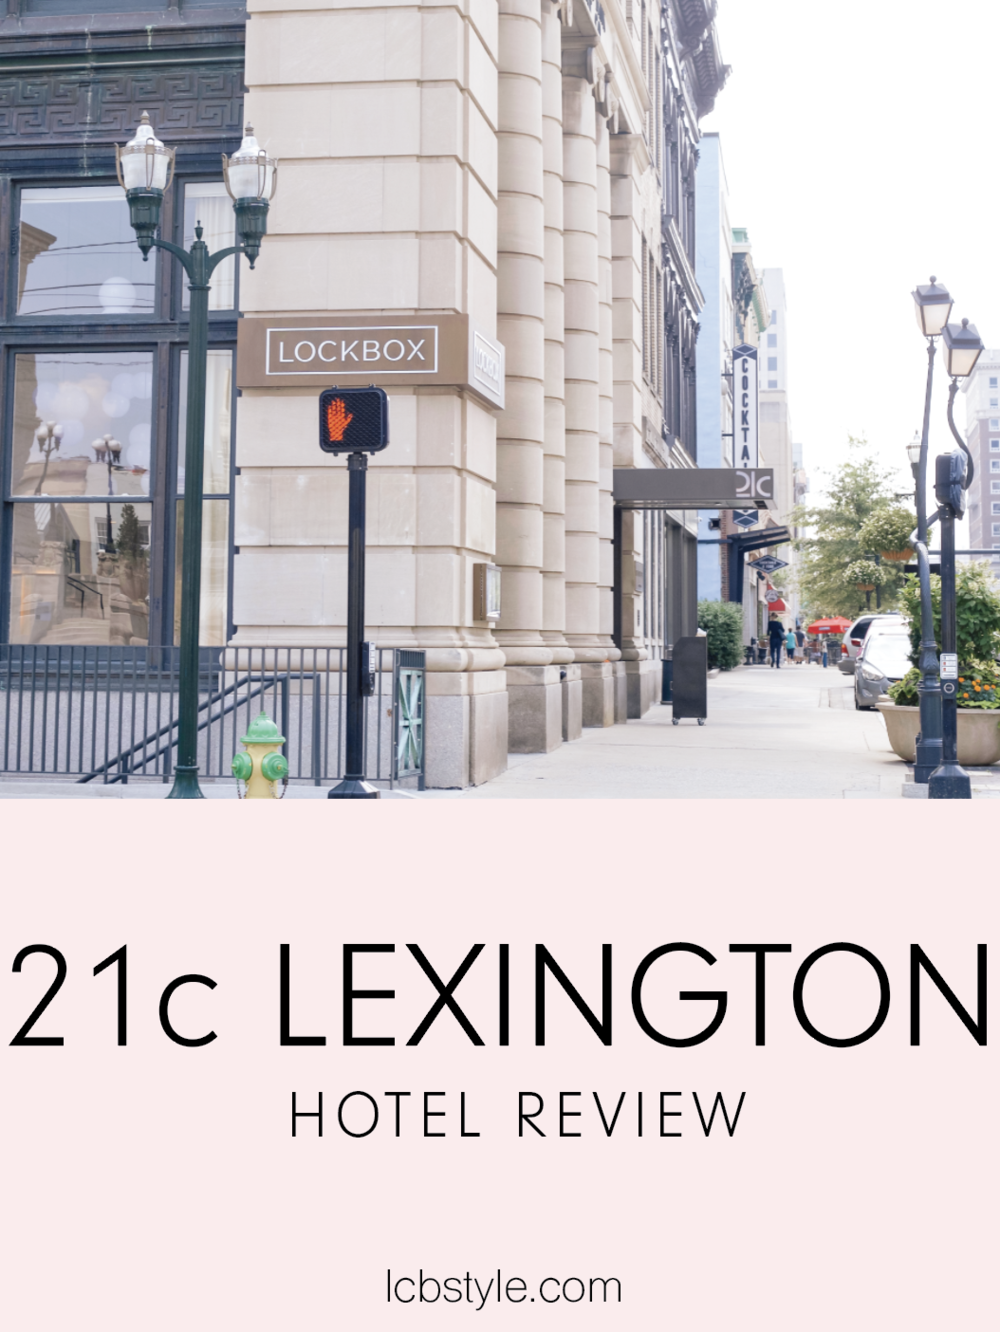 21C LEXINGTON travel cover lcb style.jpg